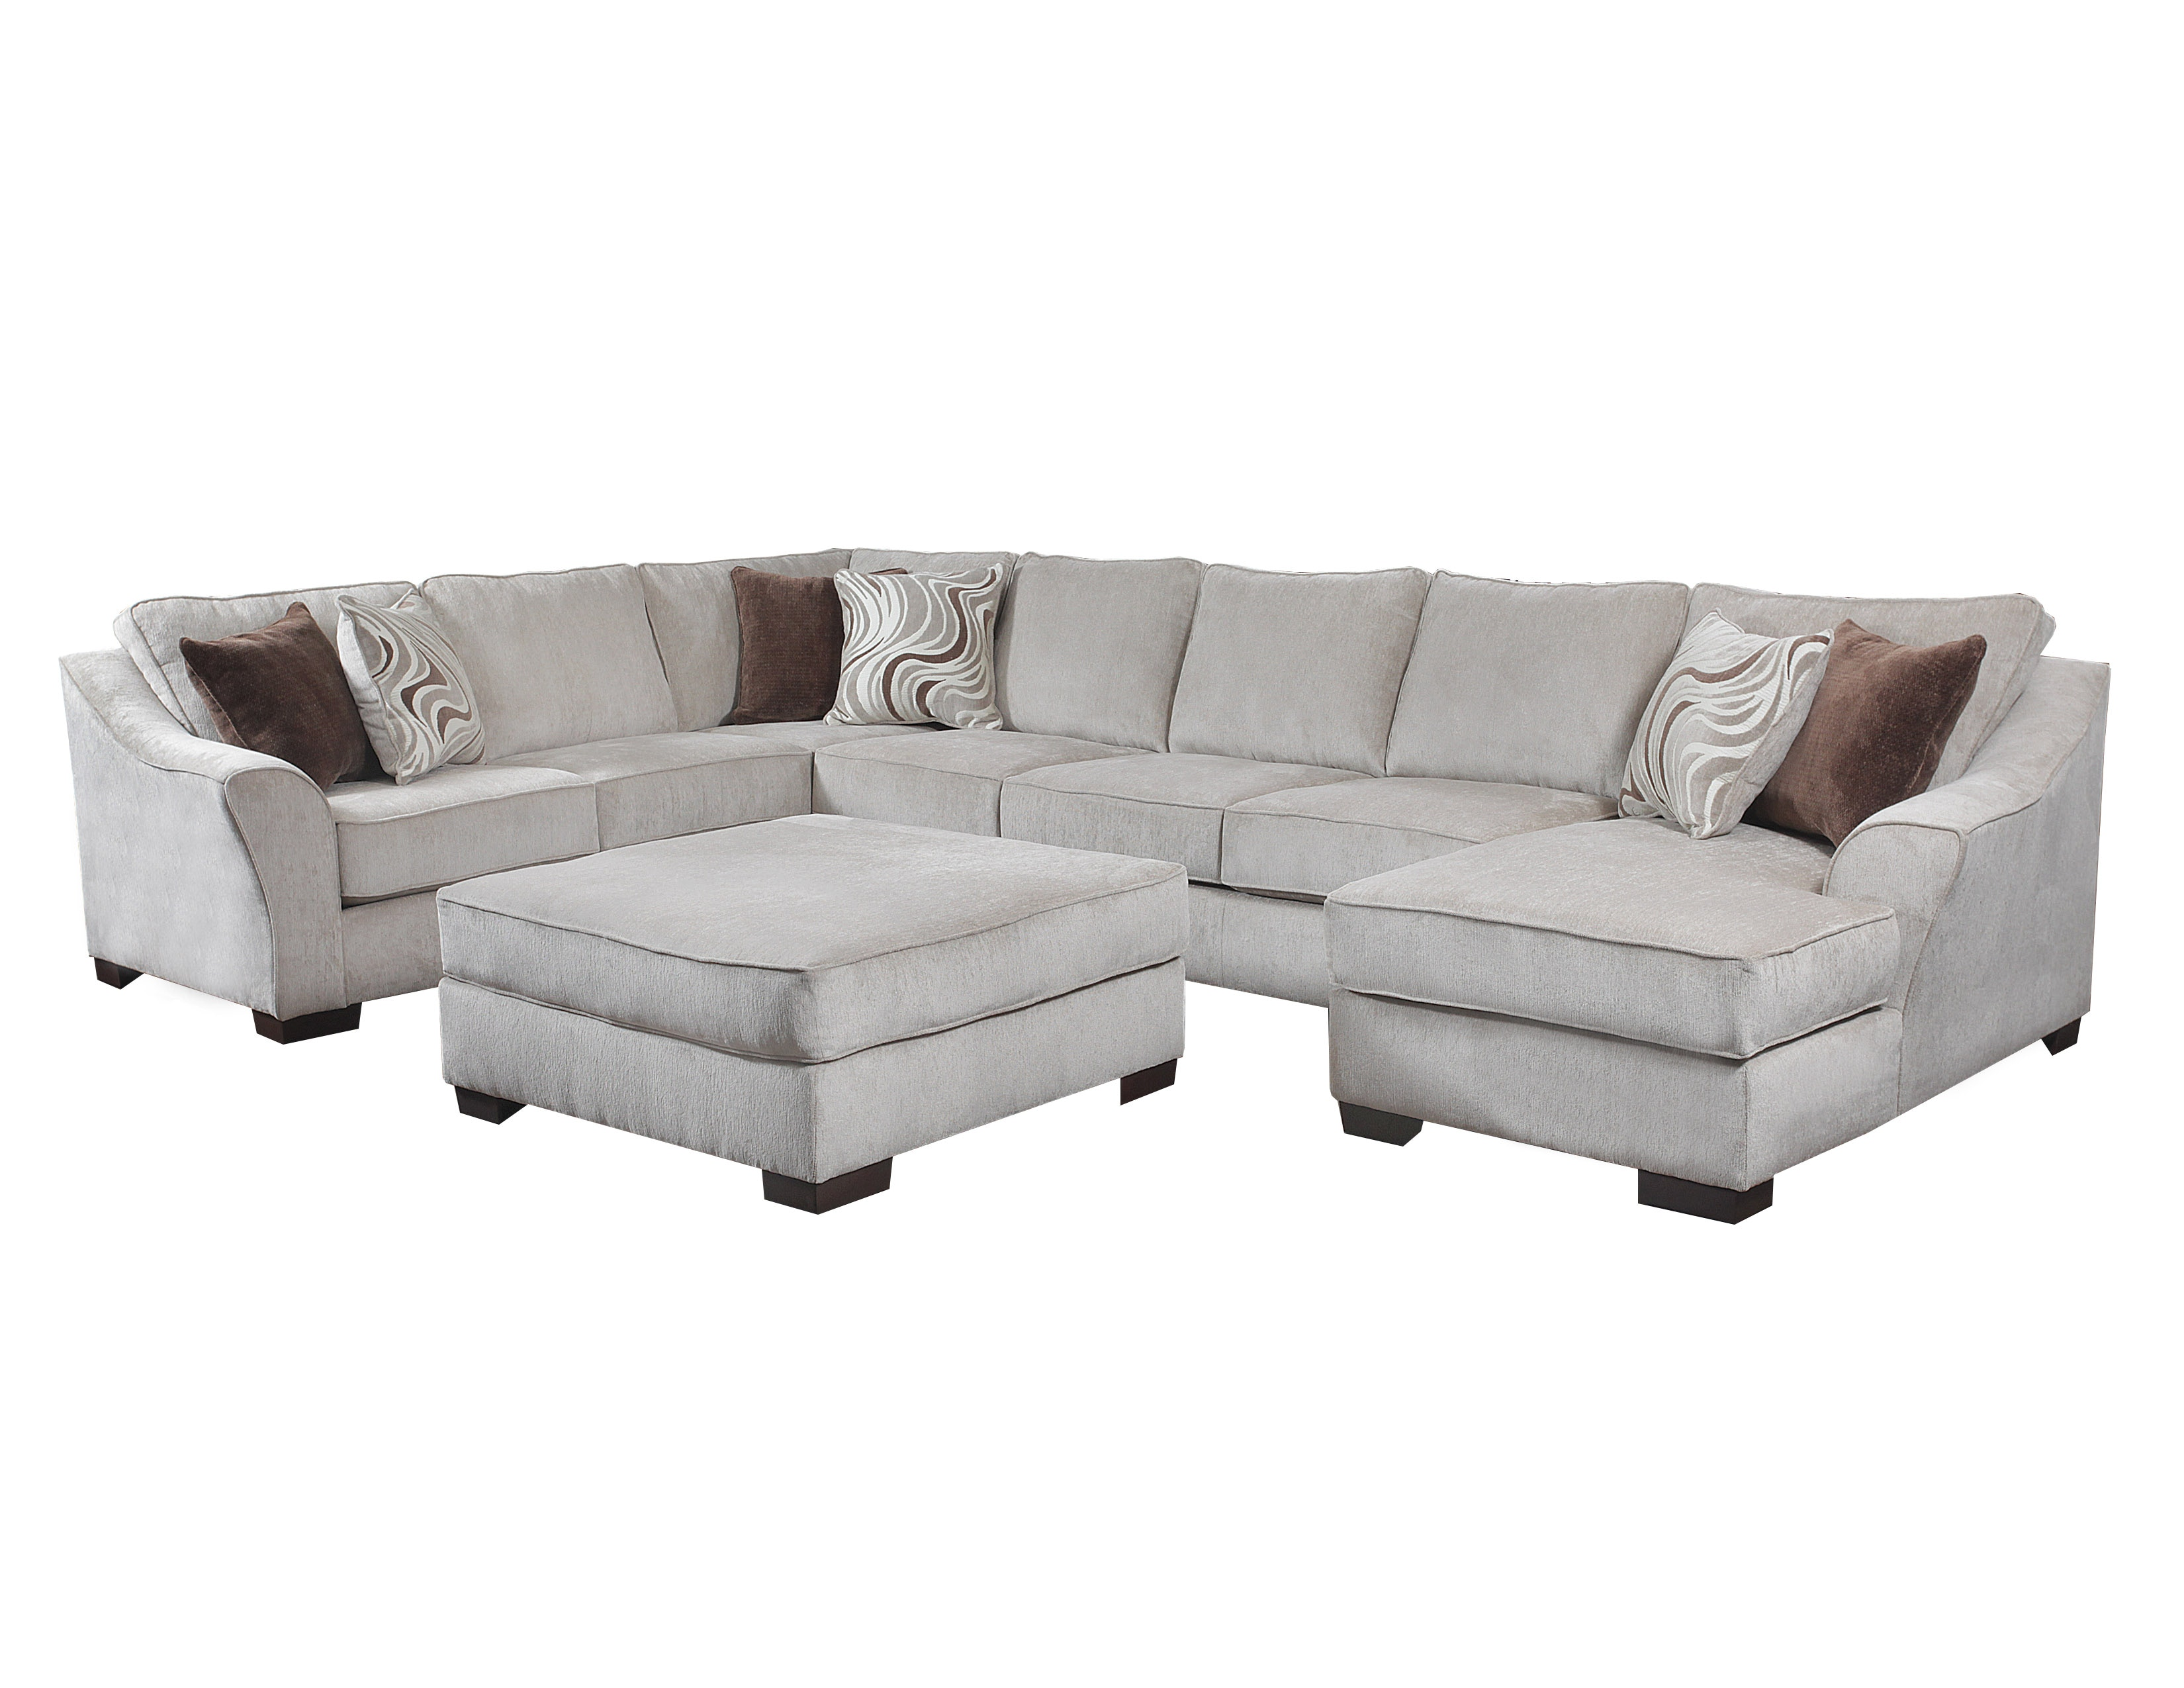 Simmons Upholstery 3-piece sectional 9355 3PC SECTIONAL  sc 1 st  Goldsteins Furniture : simmons upholstery sectional - Sectionals, Sofas & Couches